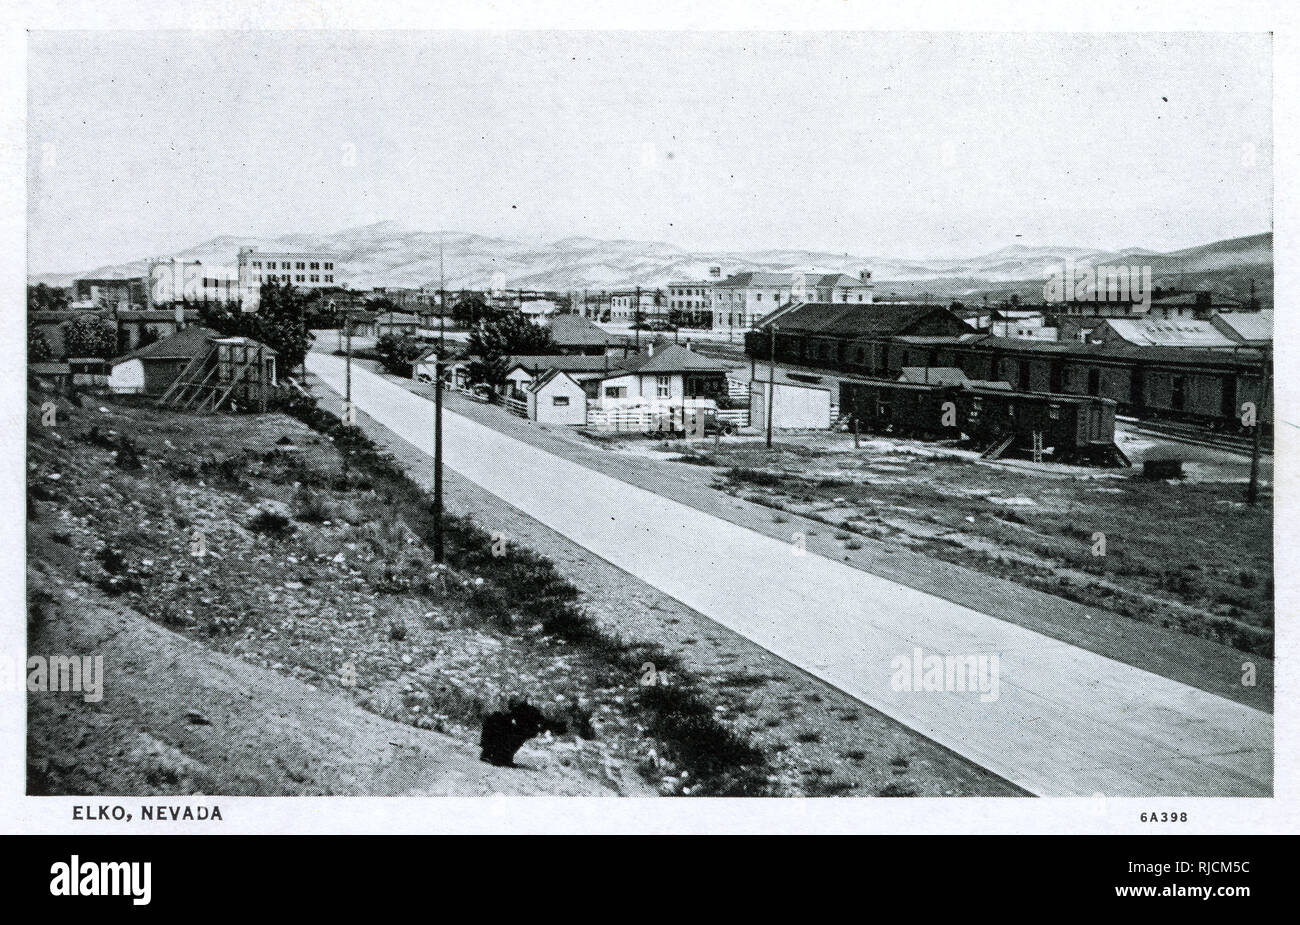 General view of Elko, Elko County, Nevada, USA, with railroad depot and yards. - Stock Image